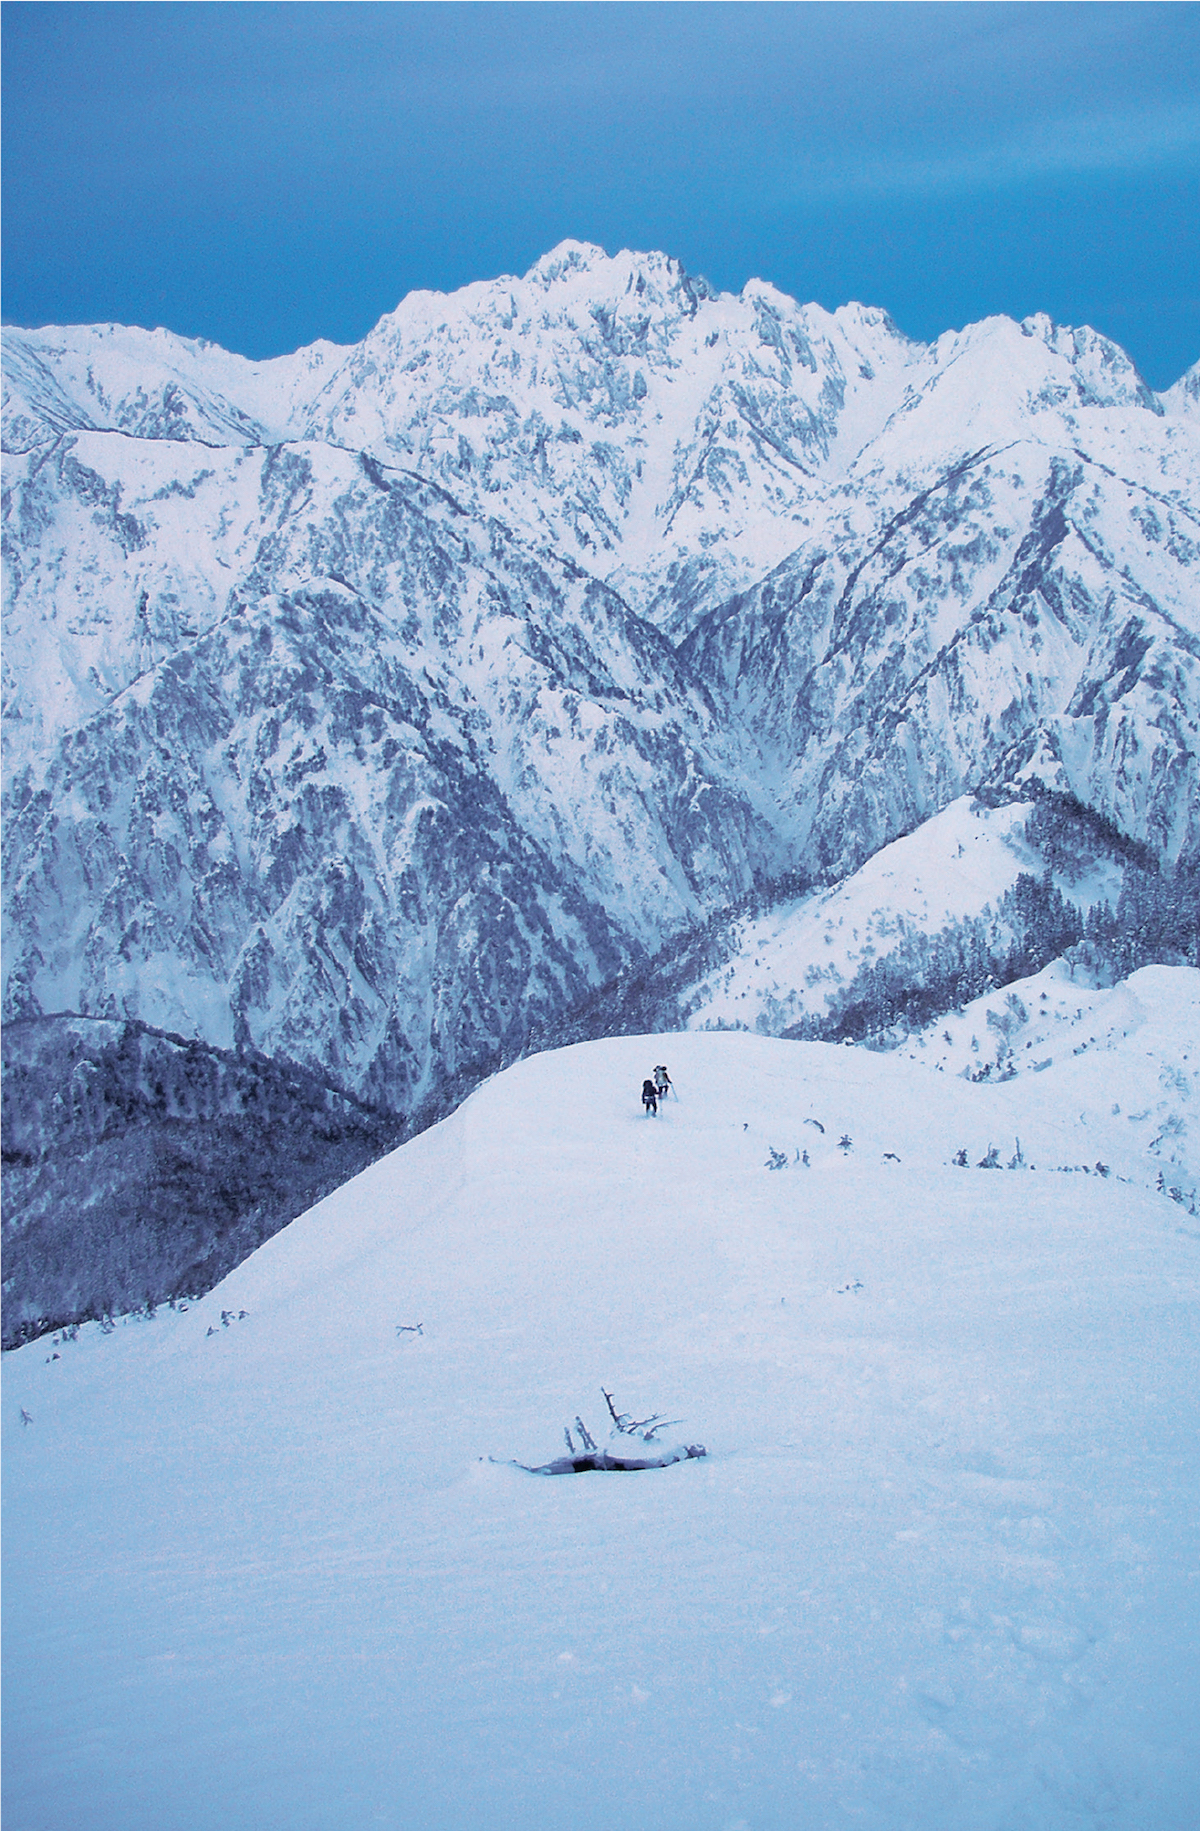 The author and Fumitaka Ichimura play Pachinko on the Kurobe Traverse, Japanese Alps. The apex of the traverse, Mt. Tsurugi (2999m), symbol of Japanese mountaineering, is visible as the highpoint in the distance. From where they are in this photo, the climbers have to descend to the Kurobe River, cross the next mountain and then keep climbing to Mt. Tsurugi. They managed the traverse in the heart of winter in fourteen days. [Photo] Yusuke Sato